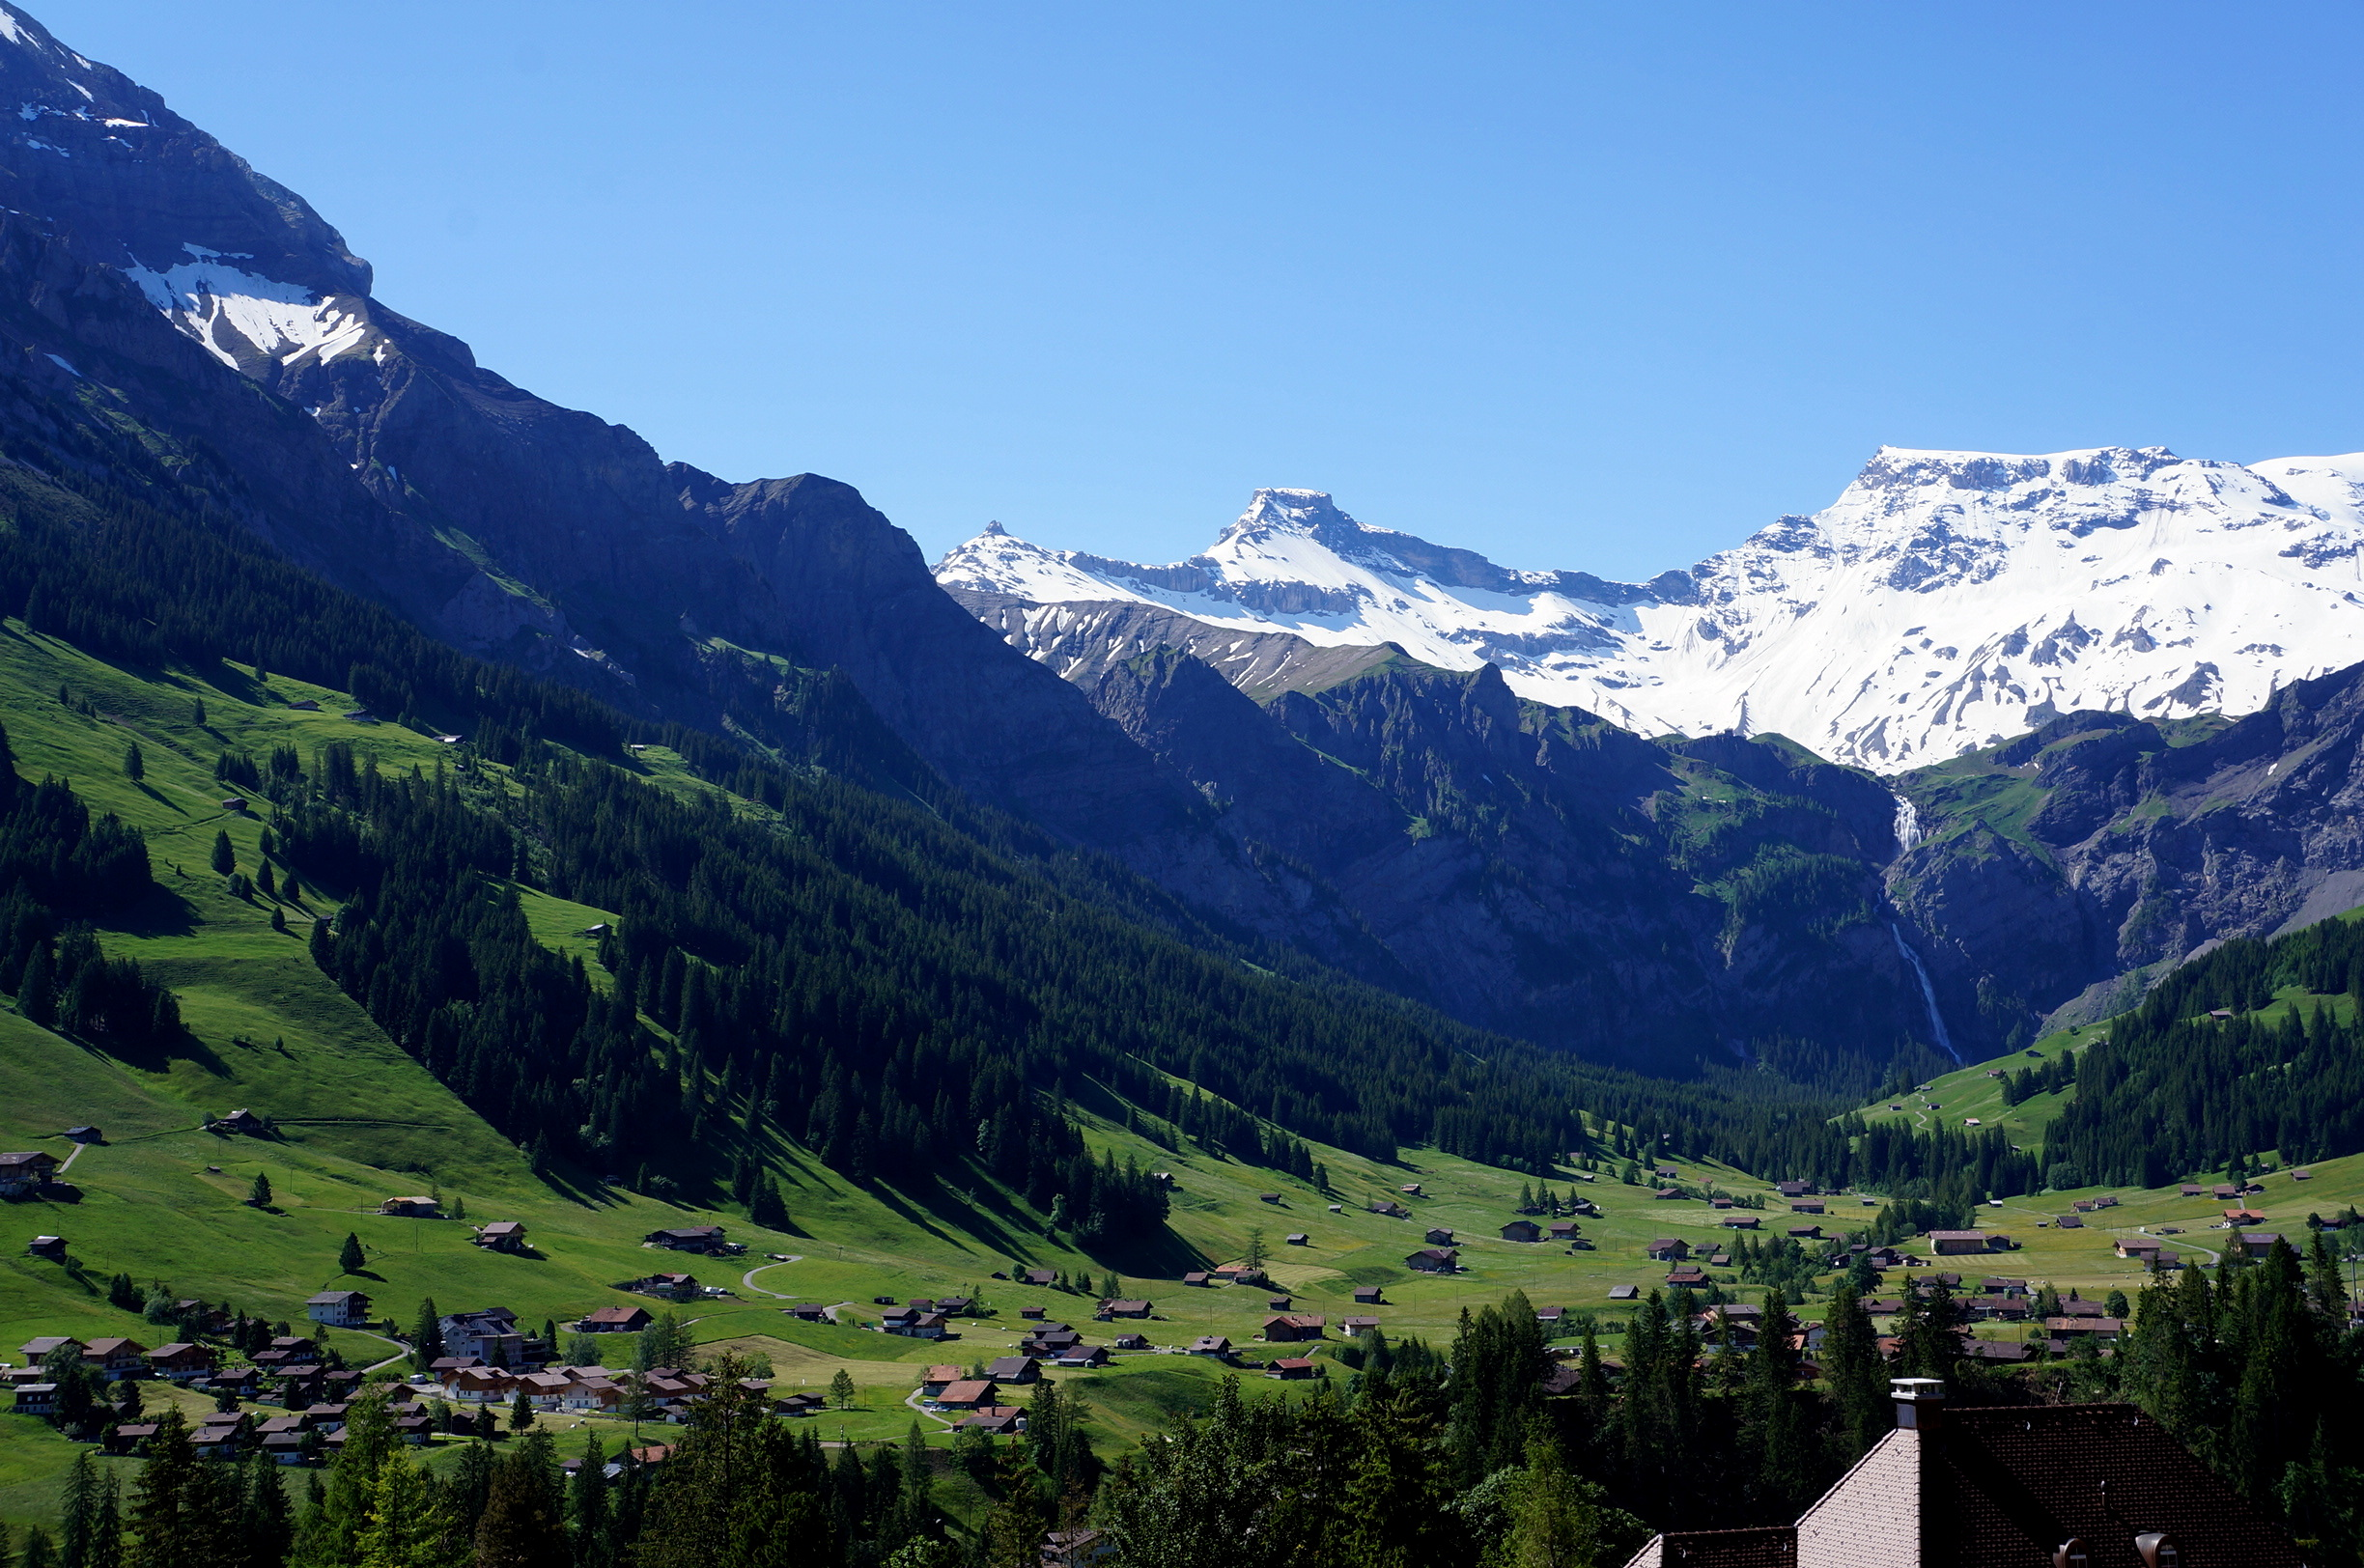 The view from Adelboden, Switzerland